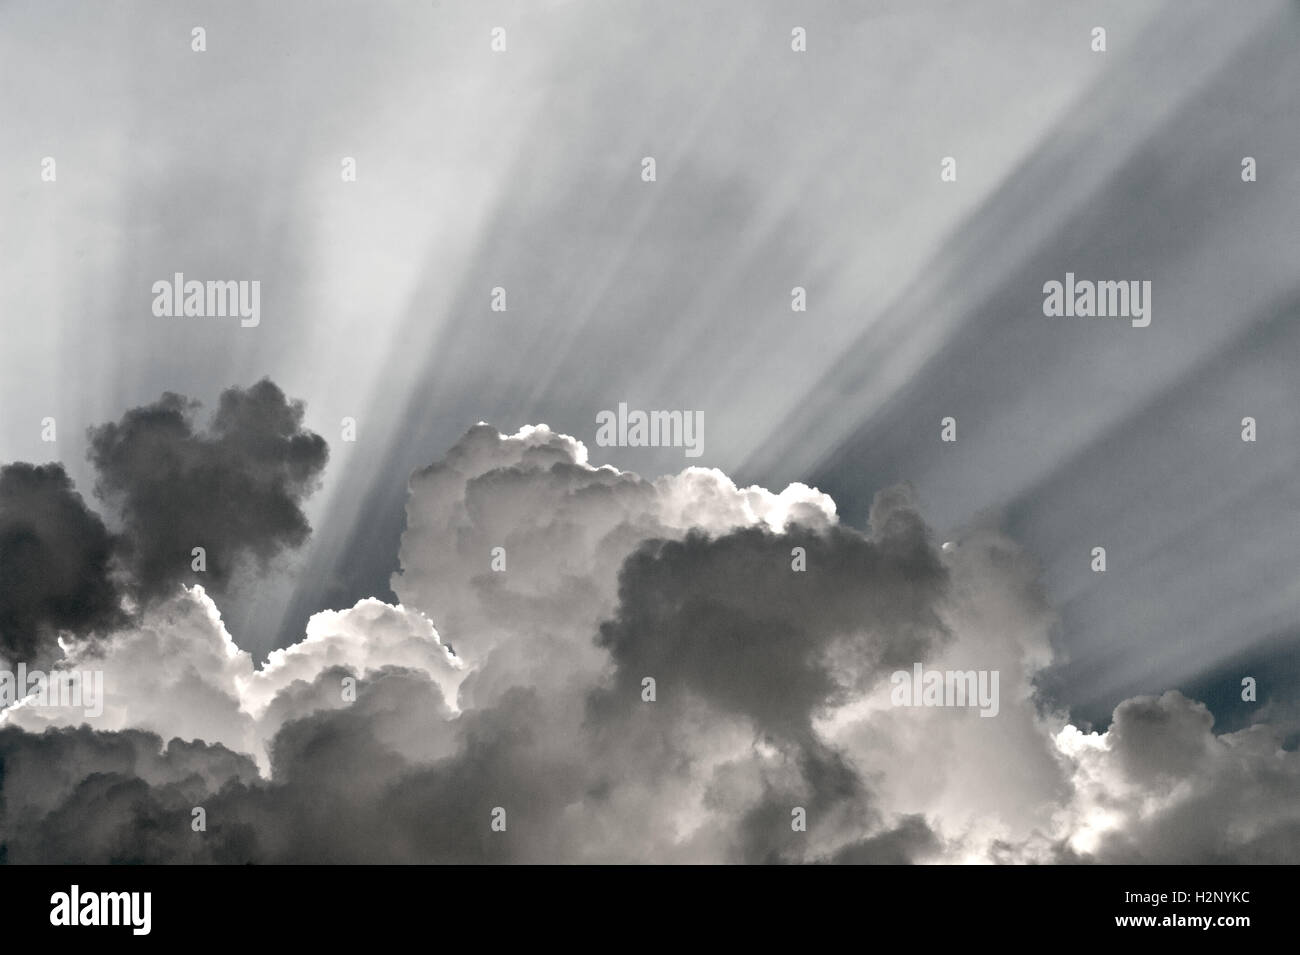 Rays of light behind dark clouds. - Stock Image